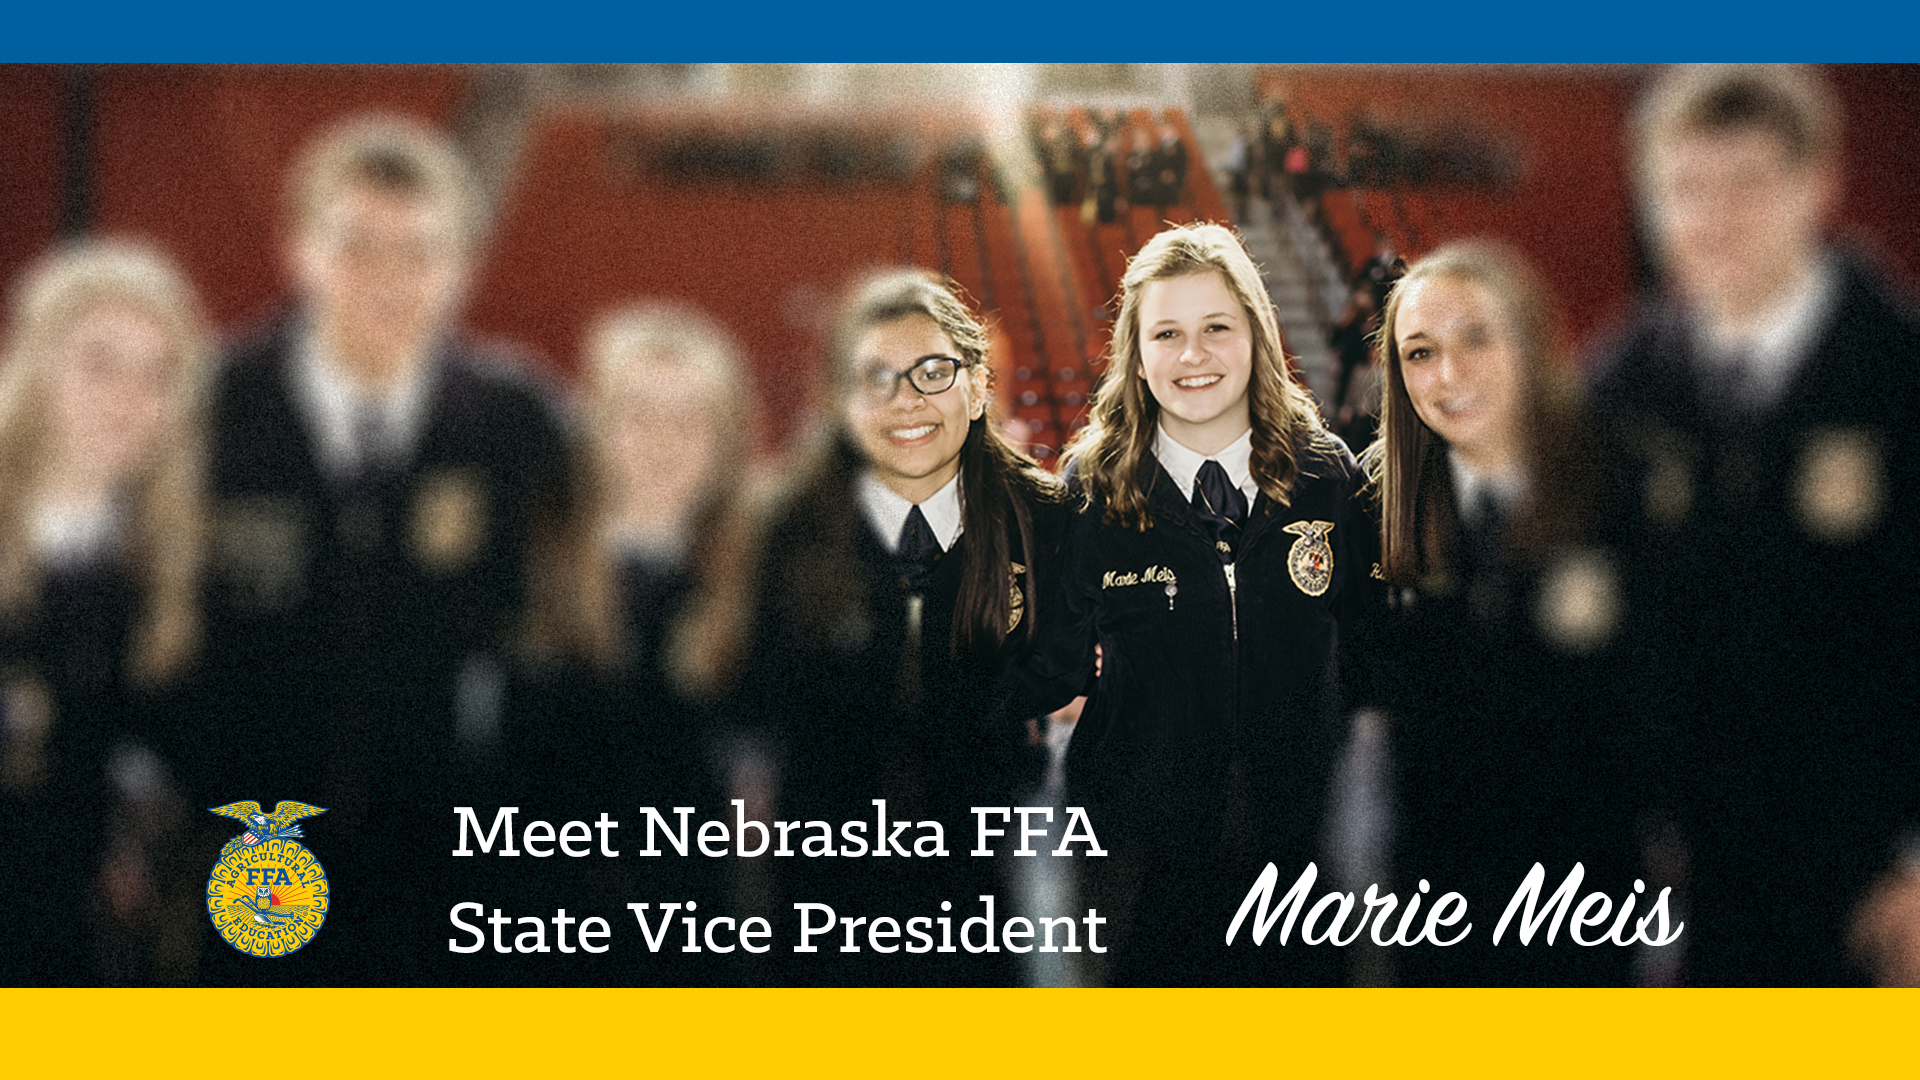 Meet Your 2018-19 Nebraska FFA Vice President: Marie Meis